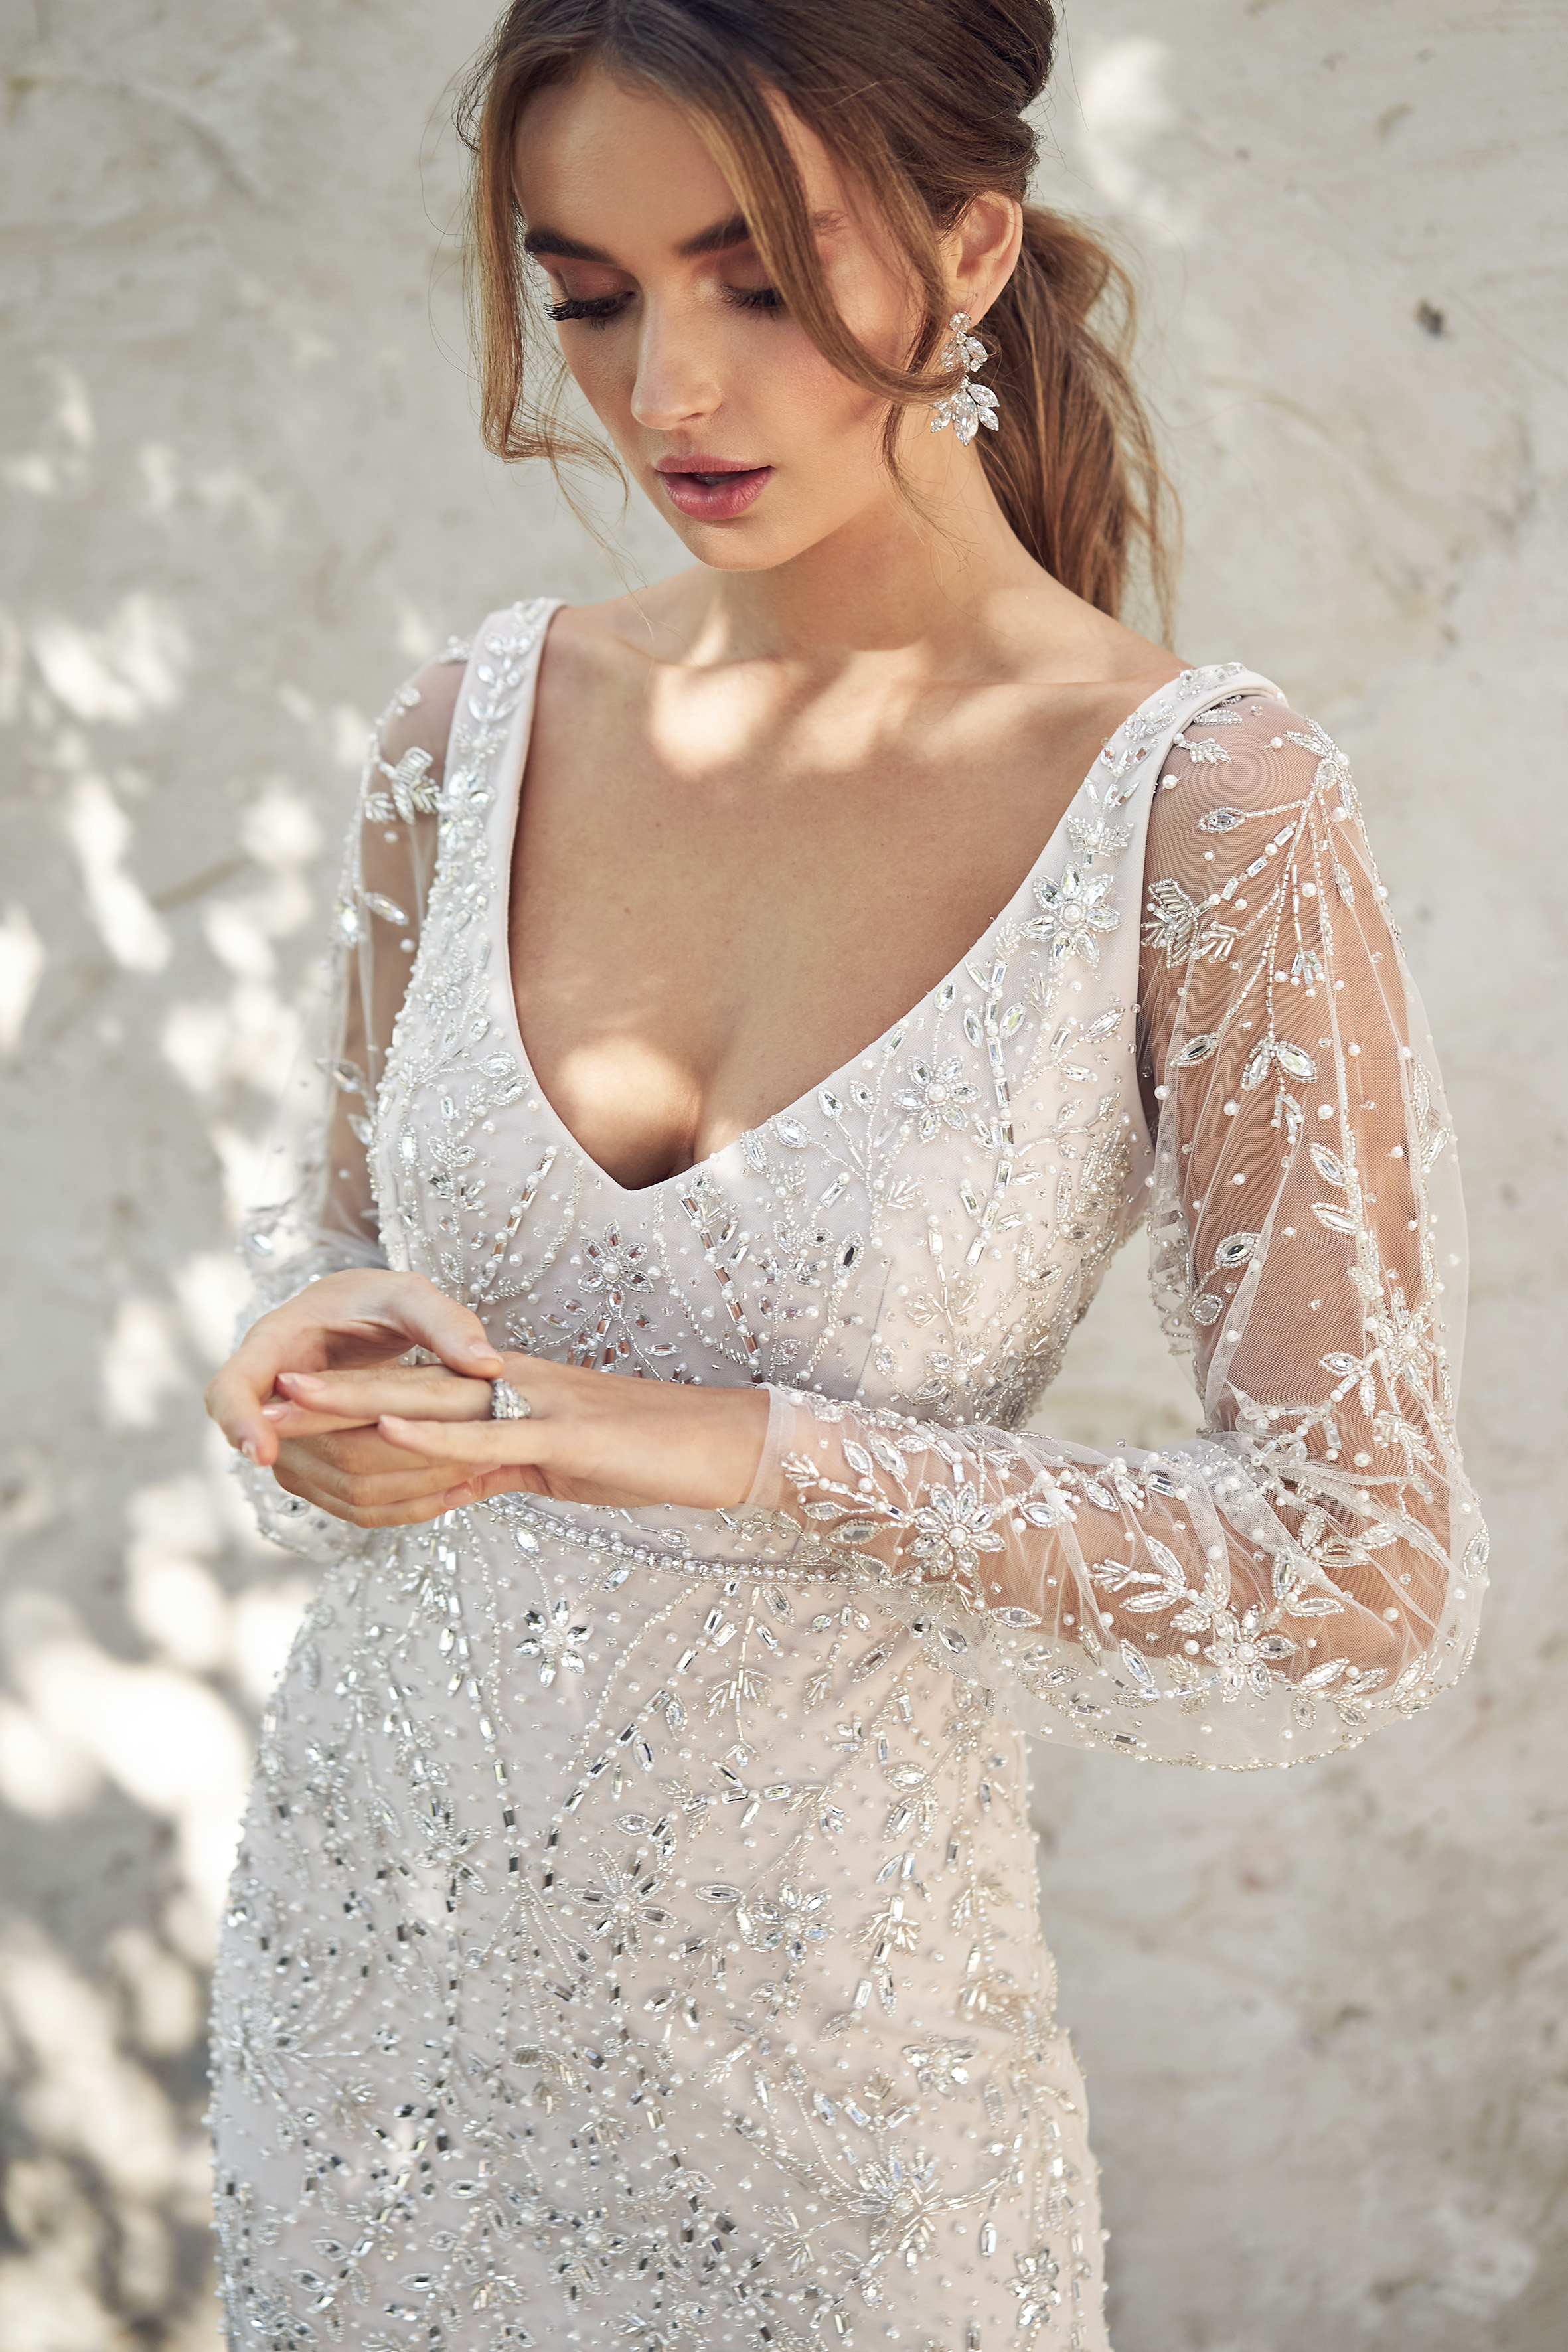 Anna Campbell Indigo Fitted Dress | Wedding Dress under $7,500 | LOVE FIND CO. Bridal Directory